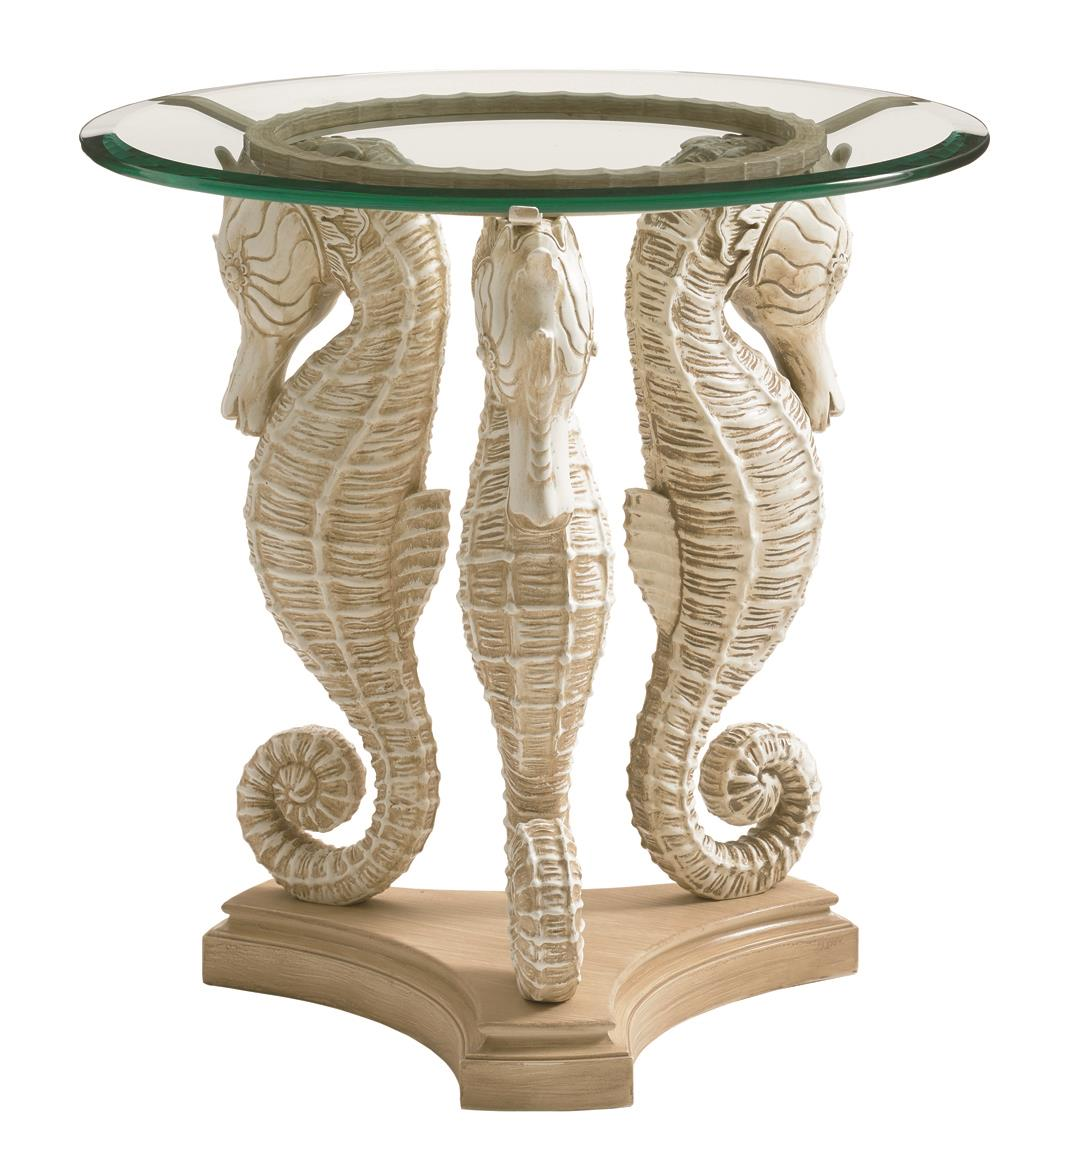 Tommy Bahama Outdoor Living Alfresco Living Sea Horse Table - Item Number: 3100-205